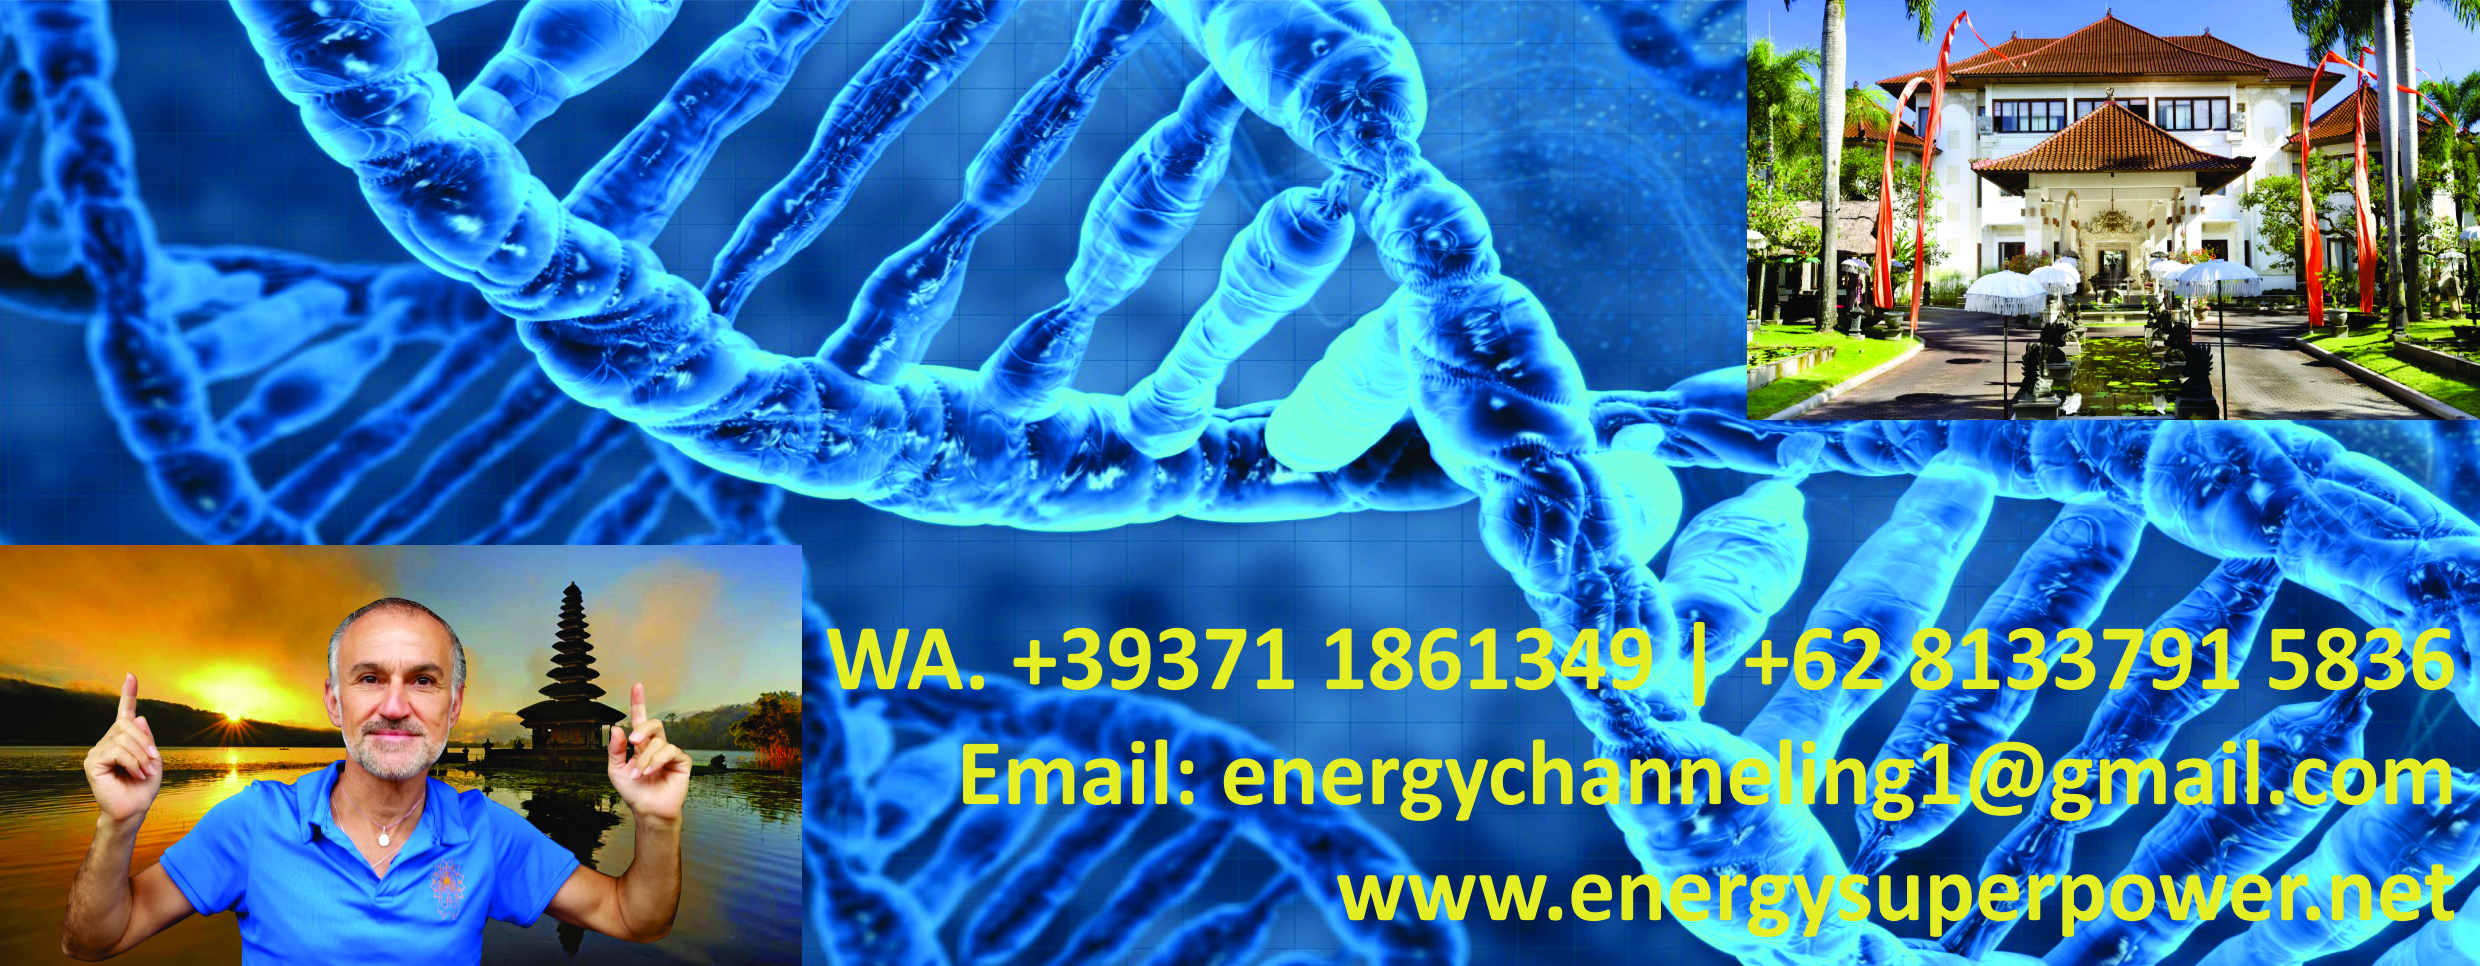 EXTRAORDINARY HEALING BENEFITS – 2018 – ENERGY CHANNELING QUANTUM ENERGY